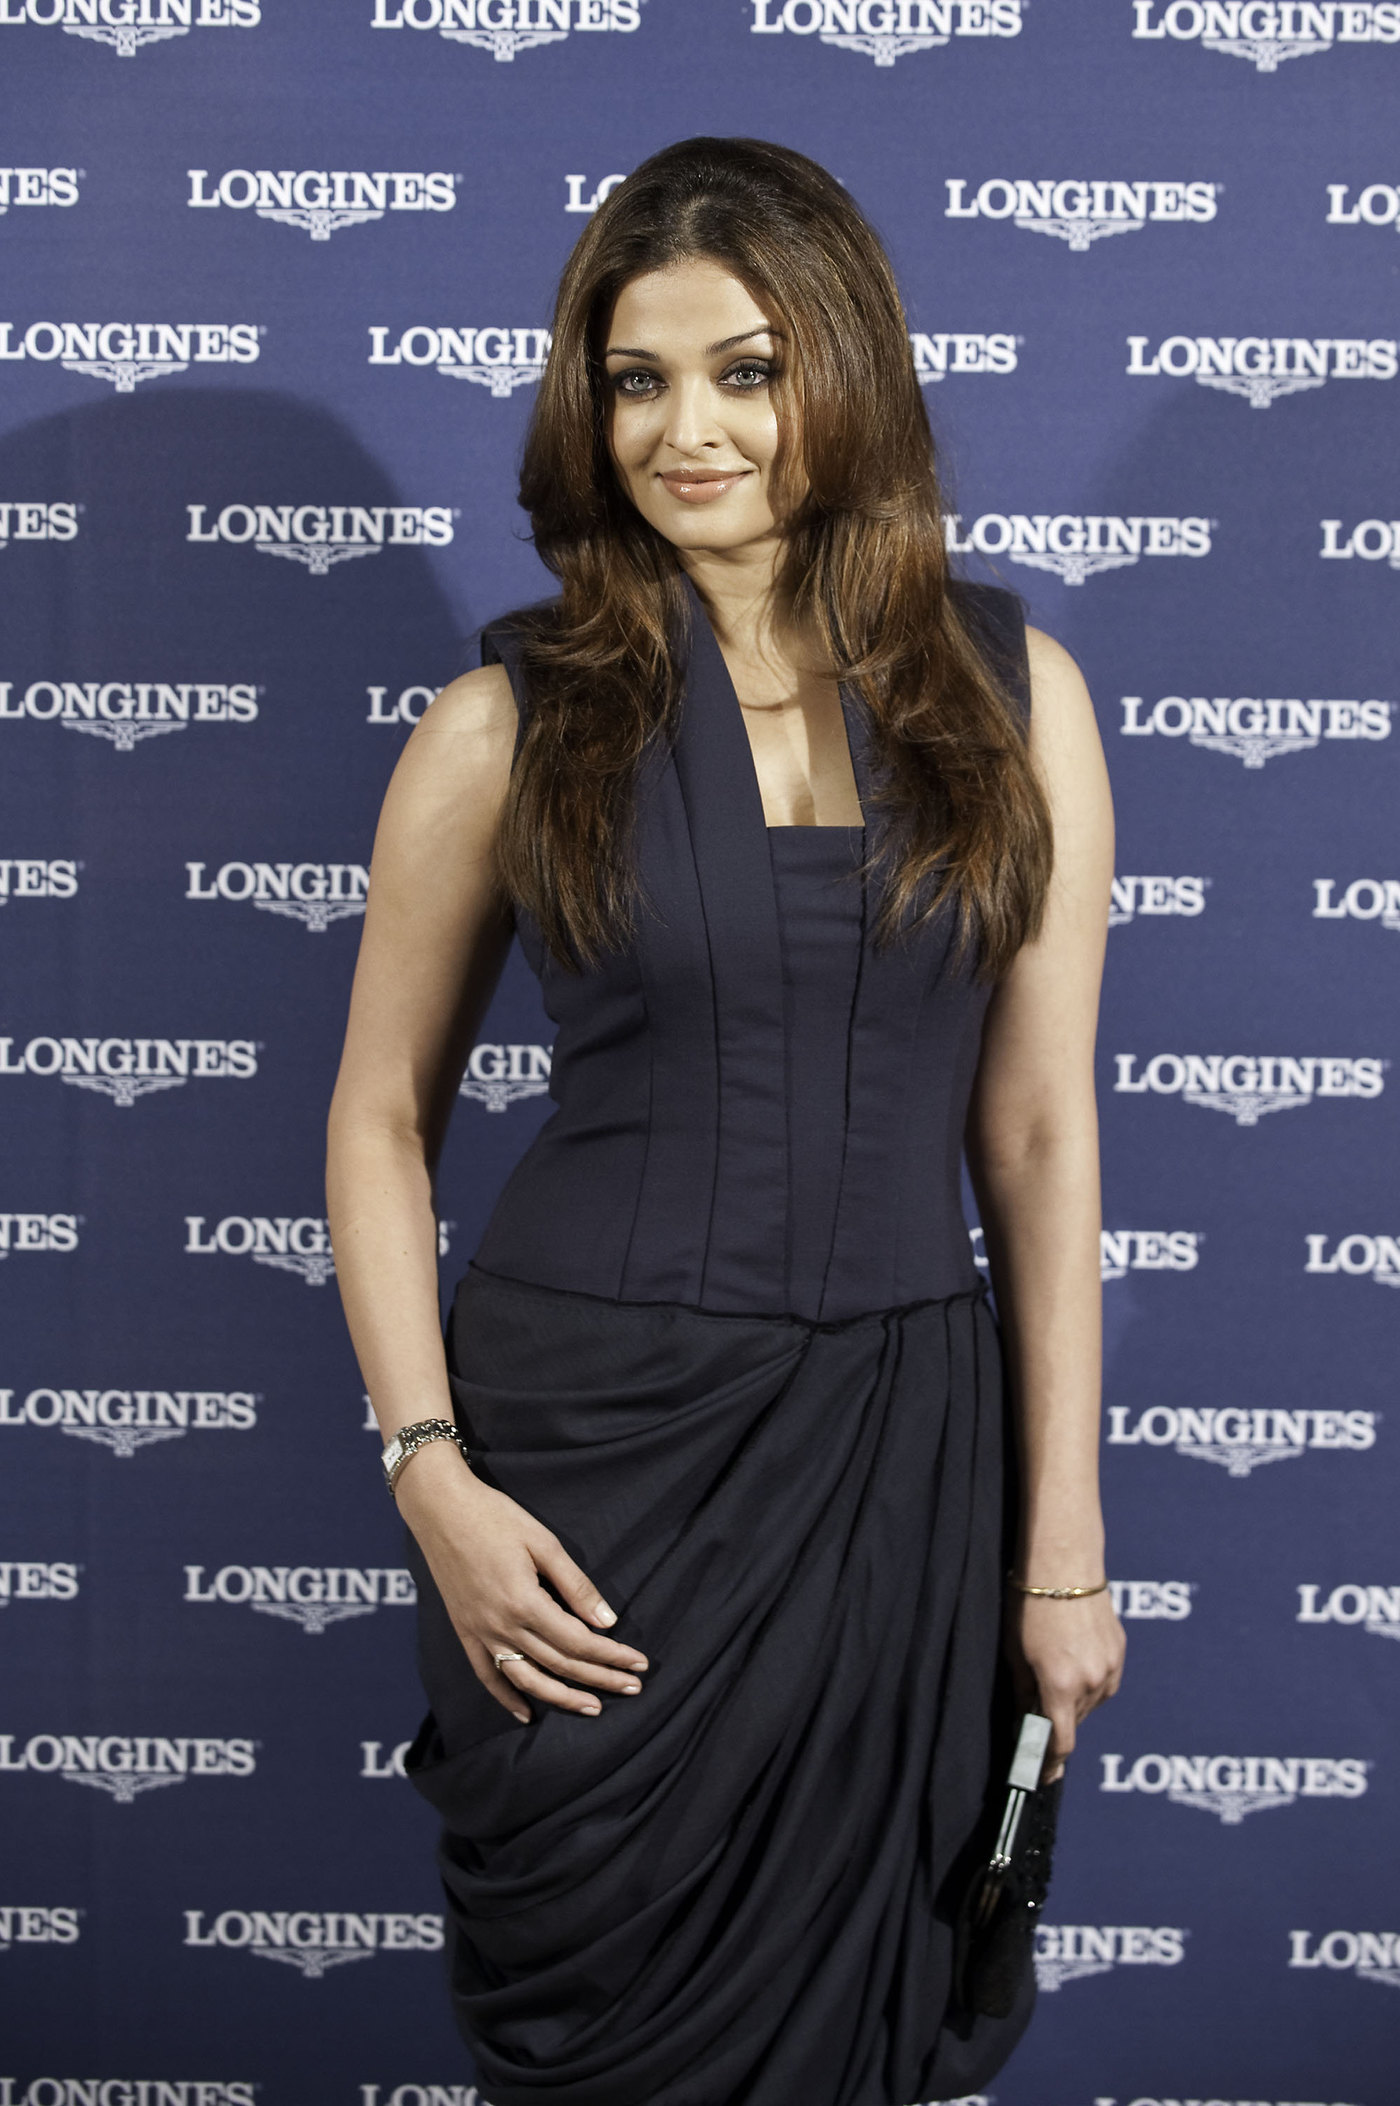 Longines Corporate Event: Kate Winslet, Aishwarya Rai Bachchan and Chi Ling Lin reveal the new additions to the Longines DolceVita collection 10